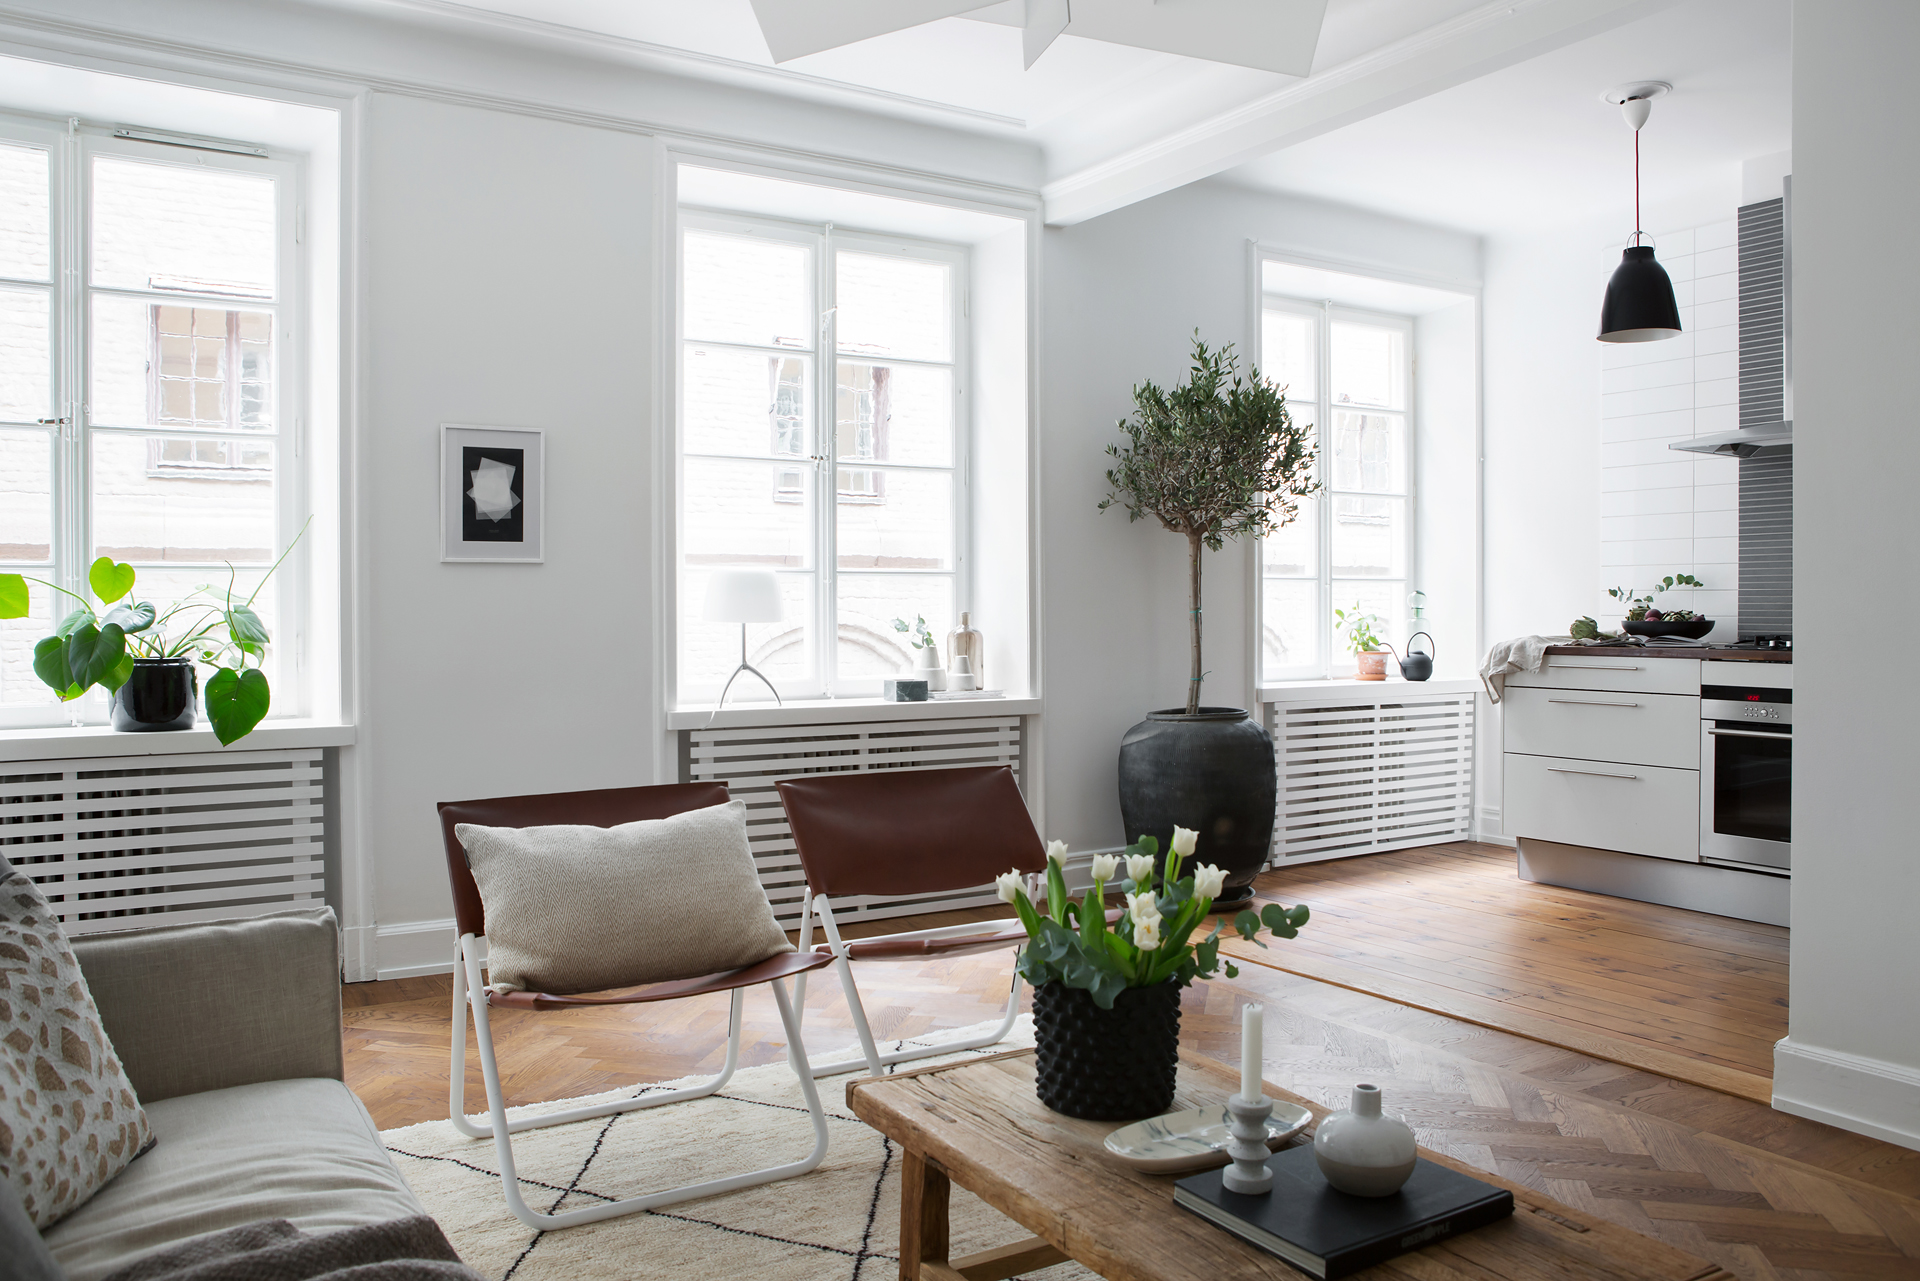 A Swedish living room, Scandinavian home design